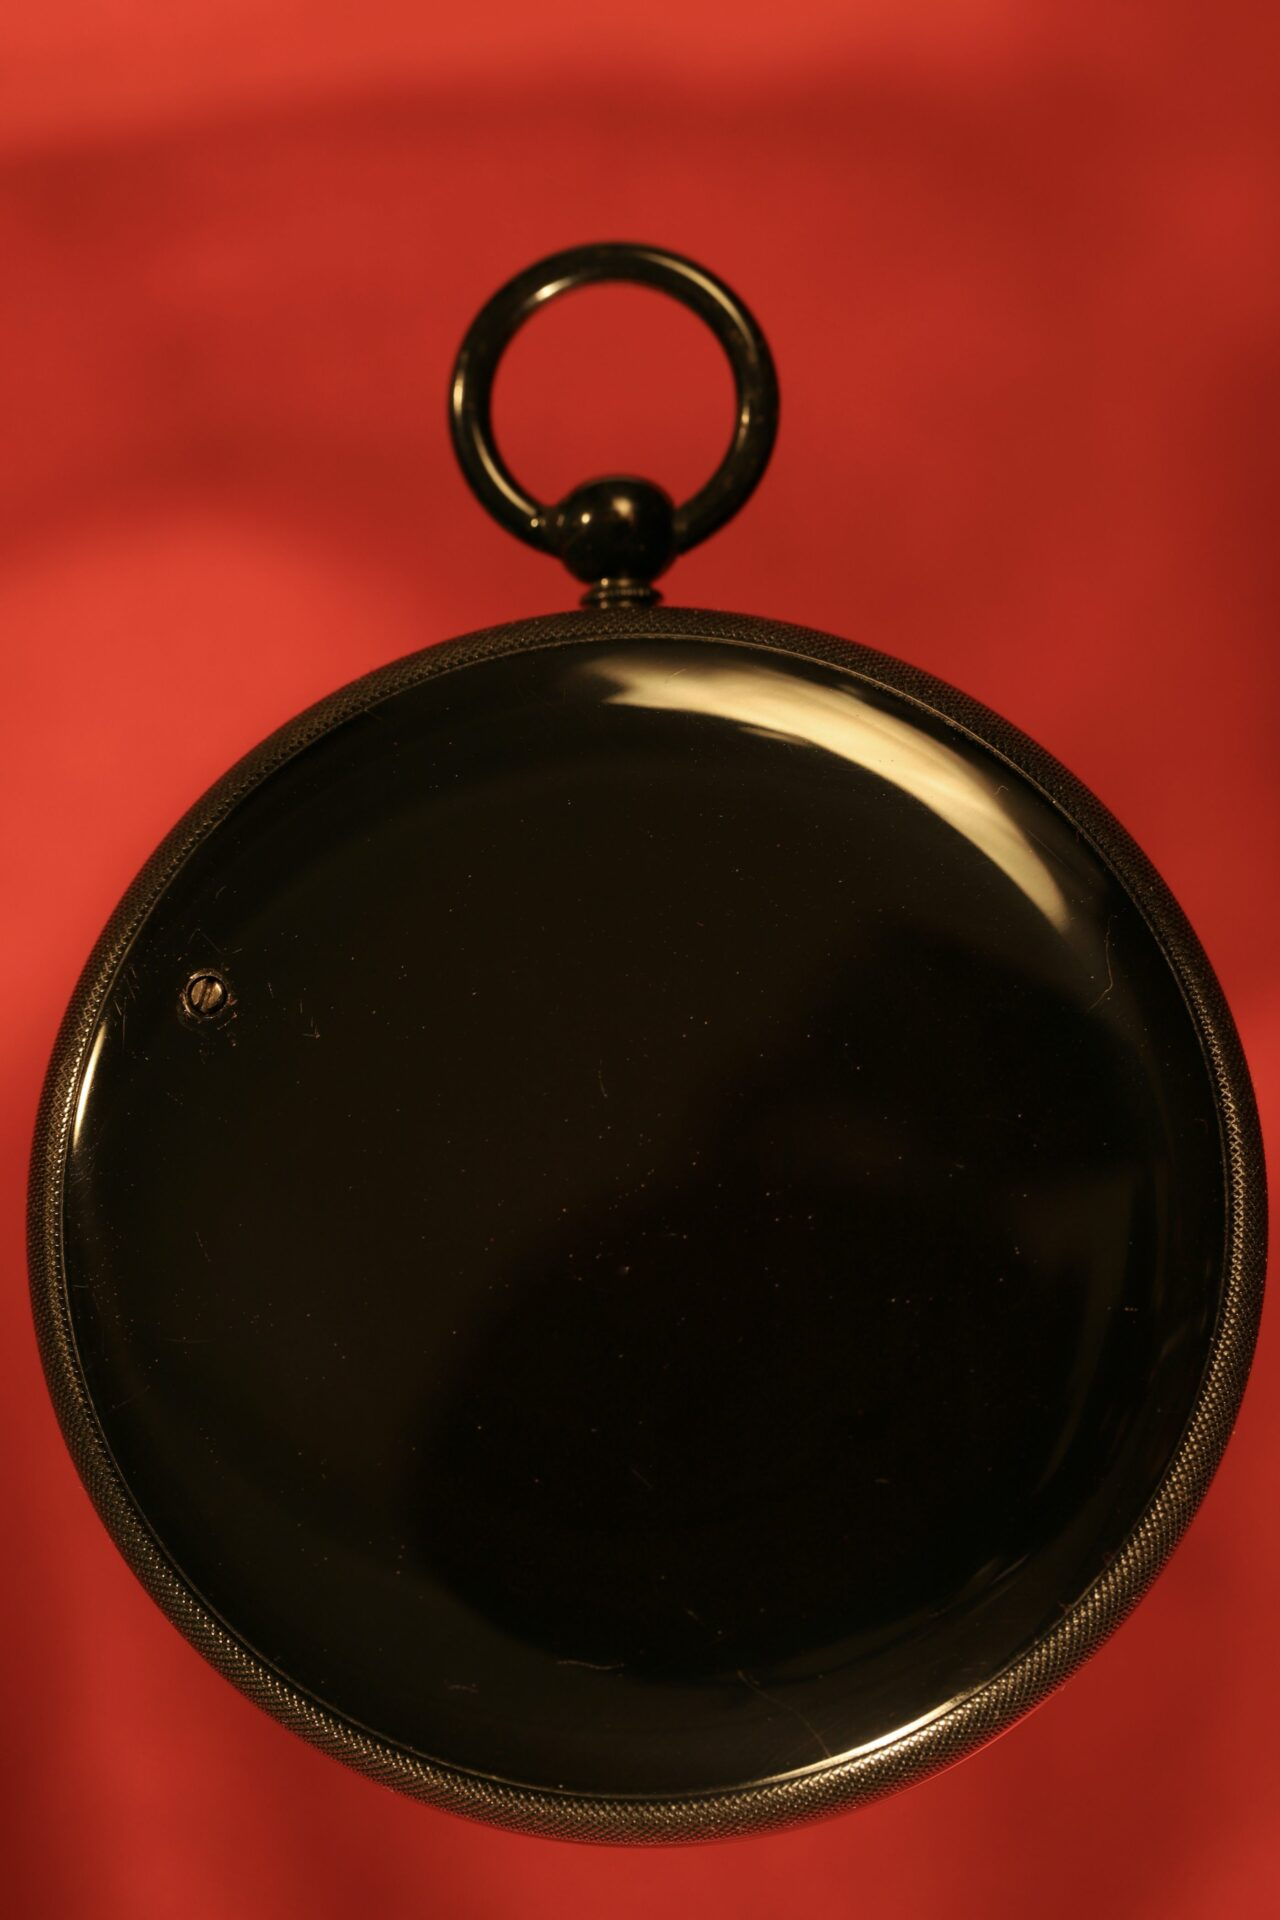 Image of reverse of French Scientific Pocket Barometer Altimeter c1890, showing the high gloss black japanned finish